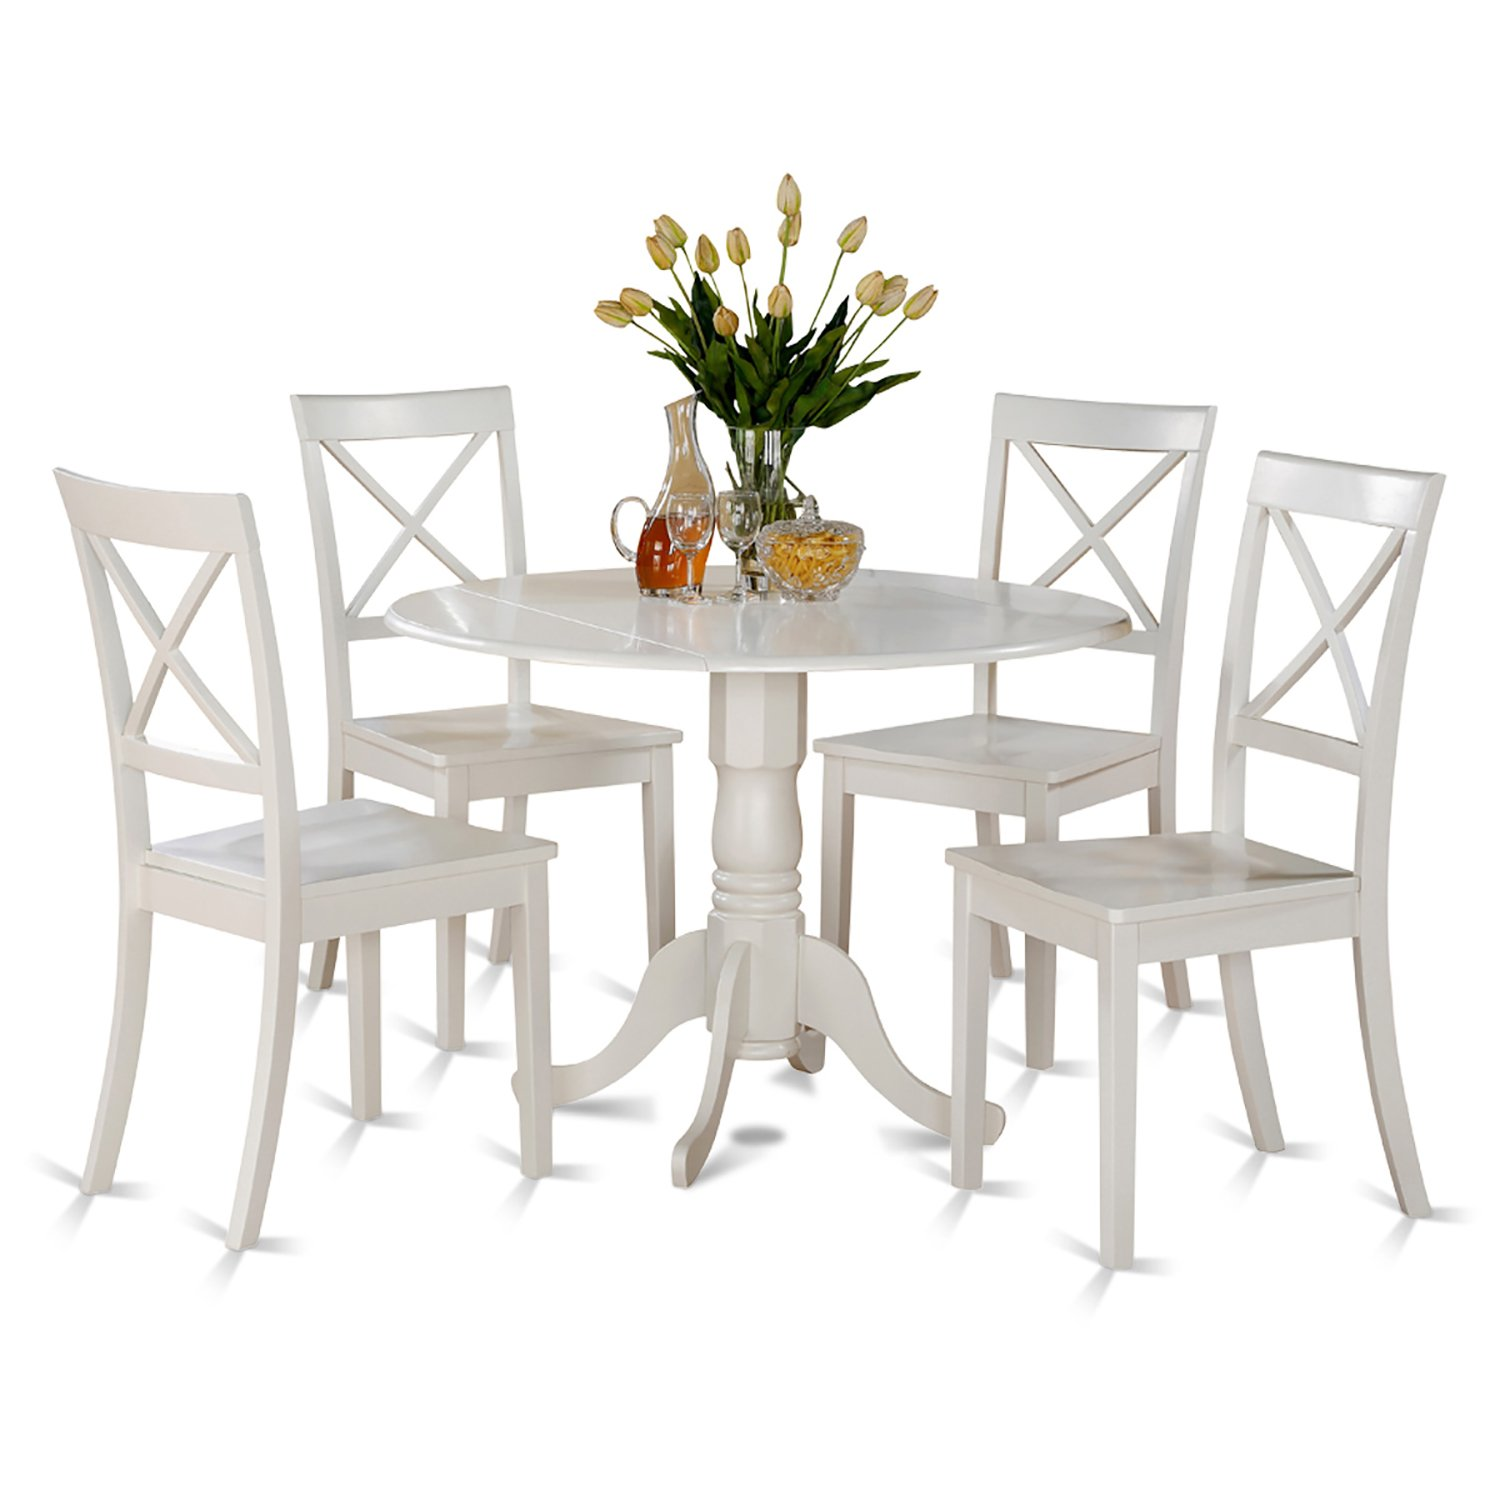 Dining Set For 4: Small Round Table And Furniture Dining Set For 4 With